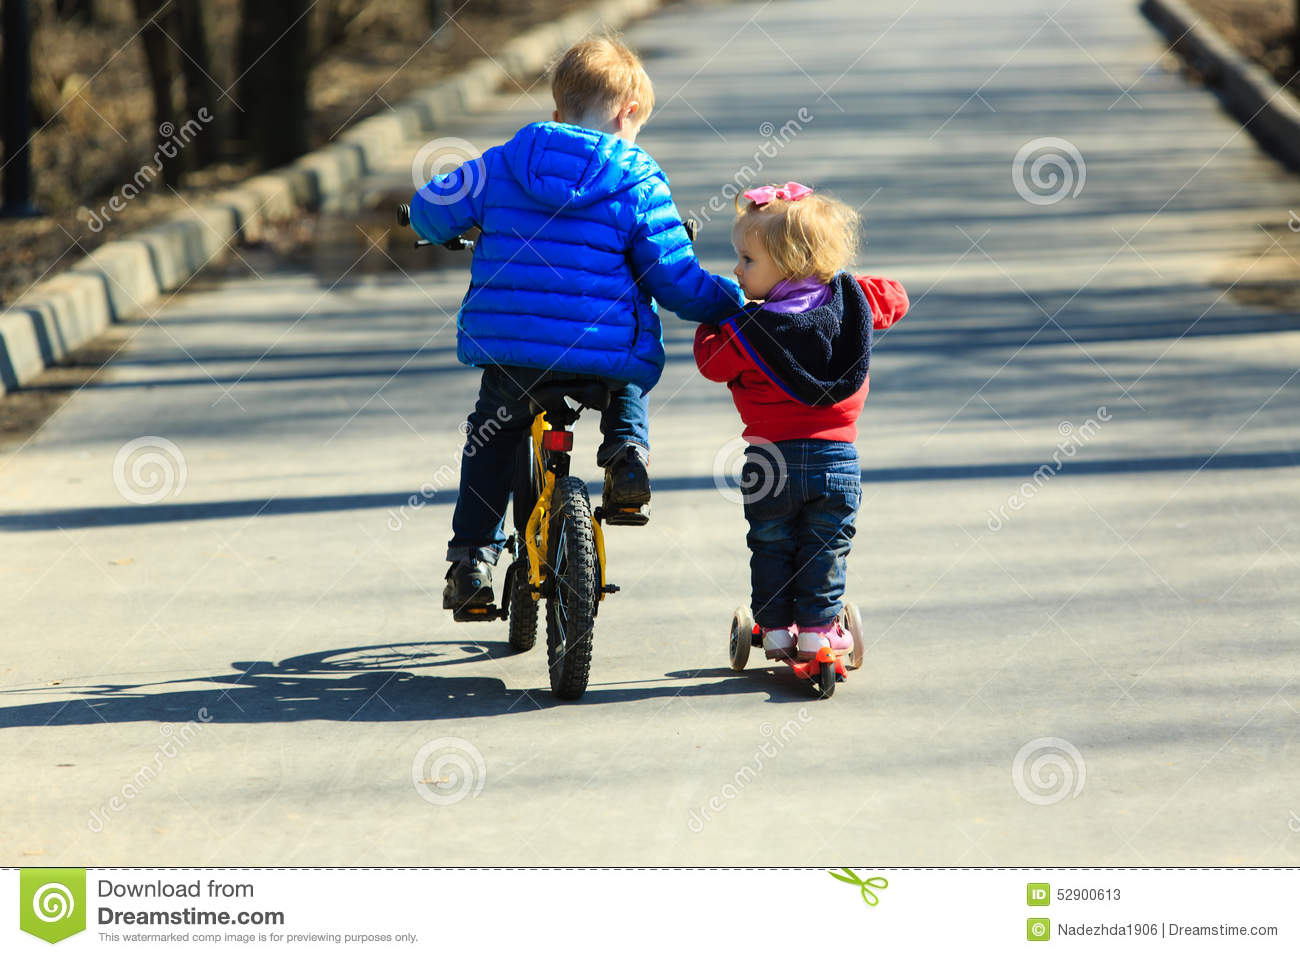 https://thumbs.dreamstime.com/z/big-brother-teaching-sister-to-ride-scooter-little-boy-bike-baby-girl-outdoors-52900613.jpg